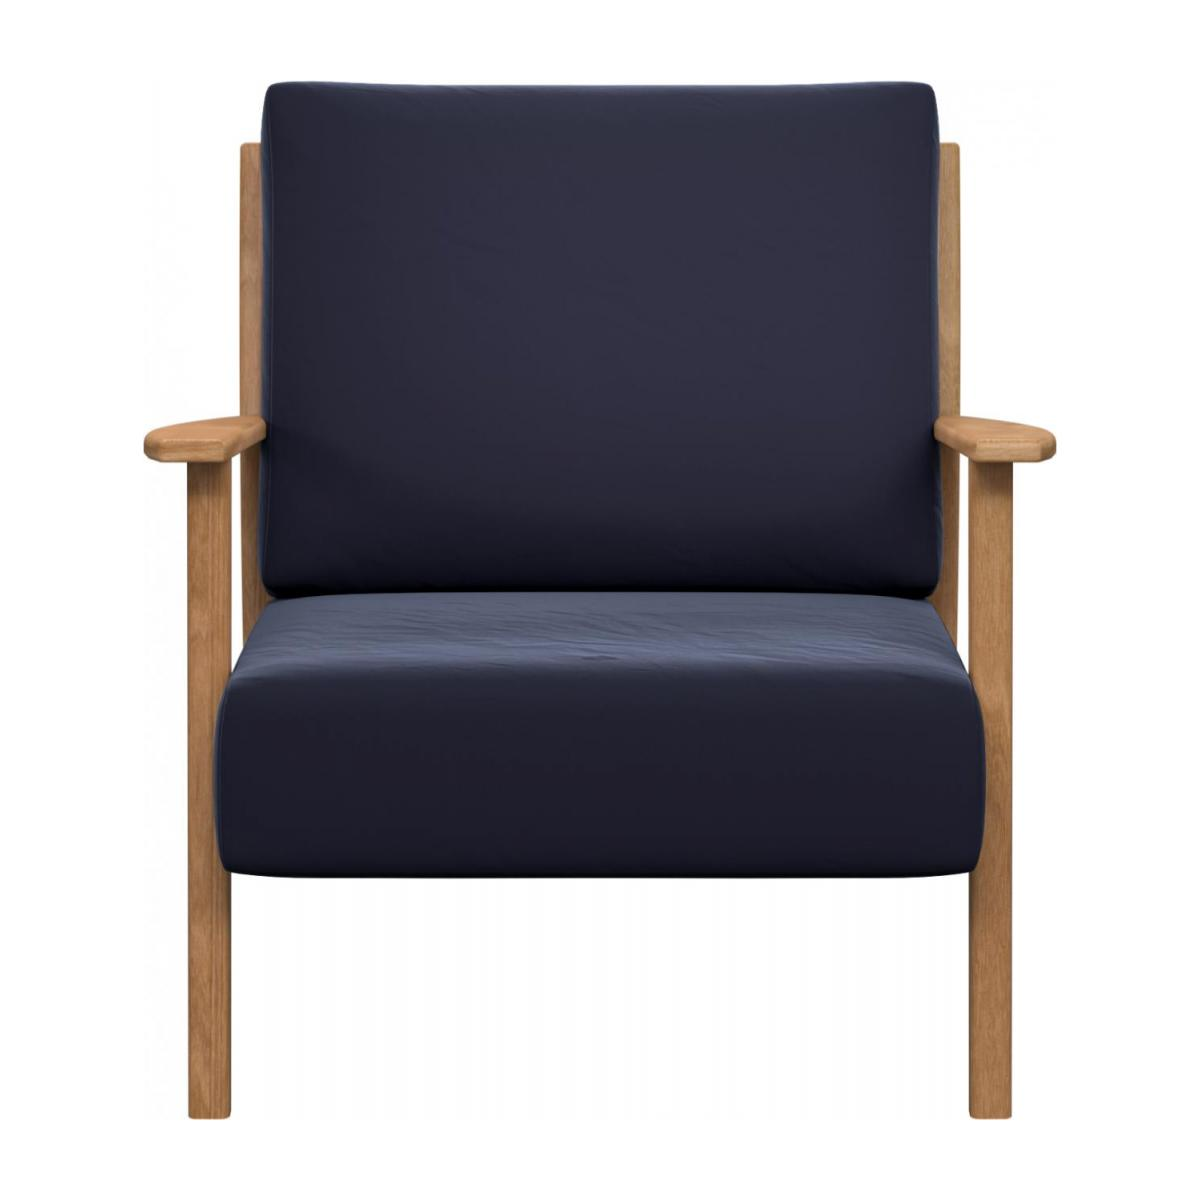 Armchair in Super Velvet fabric, dark blue n°2